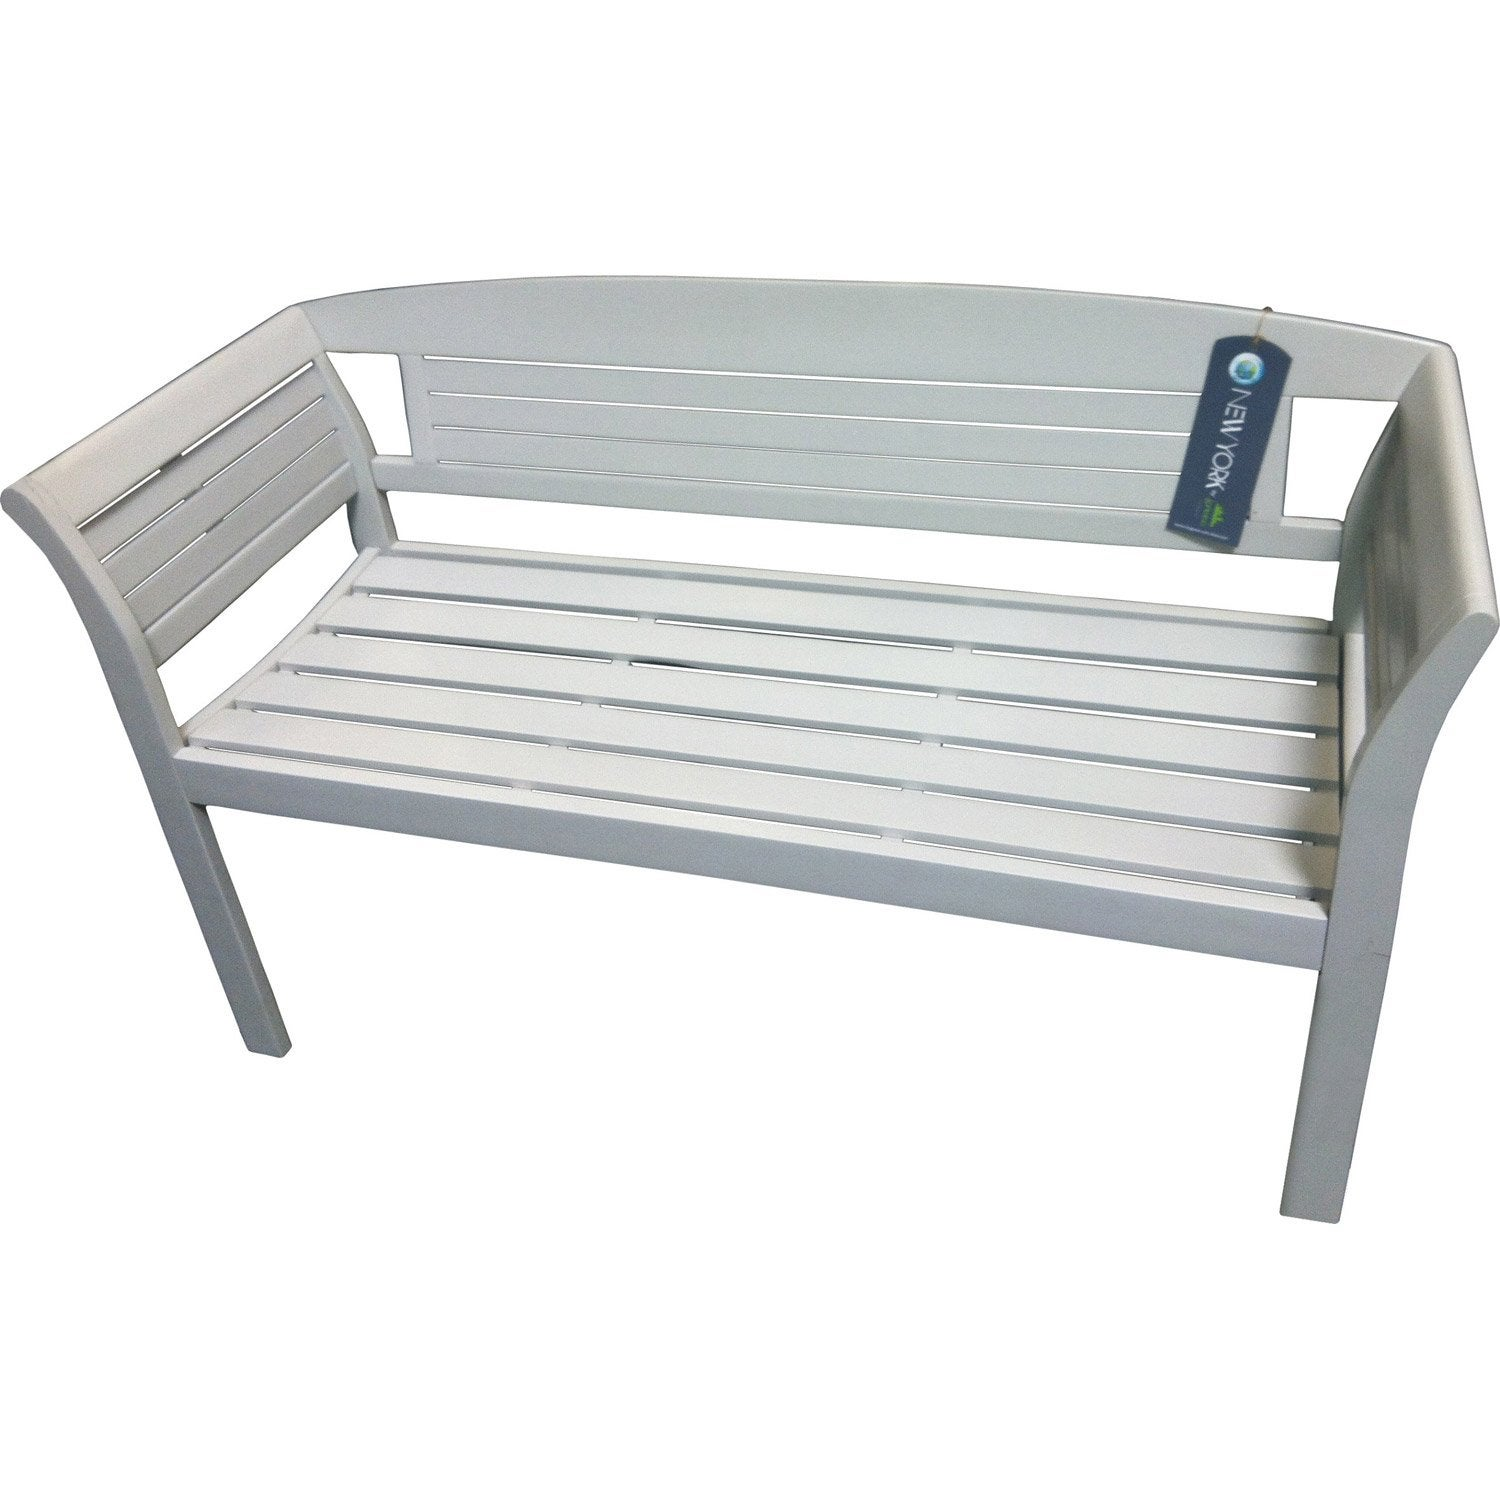 Banc 2 places de jardin en bois new york muscade leroy merlin - Bois de coffrage leroy merlin ...